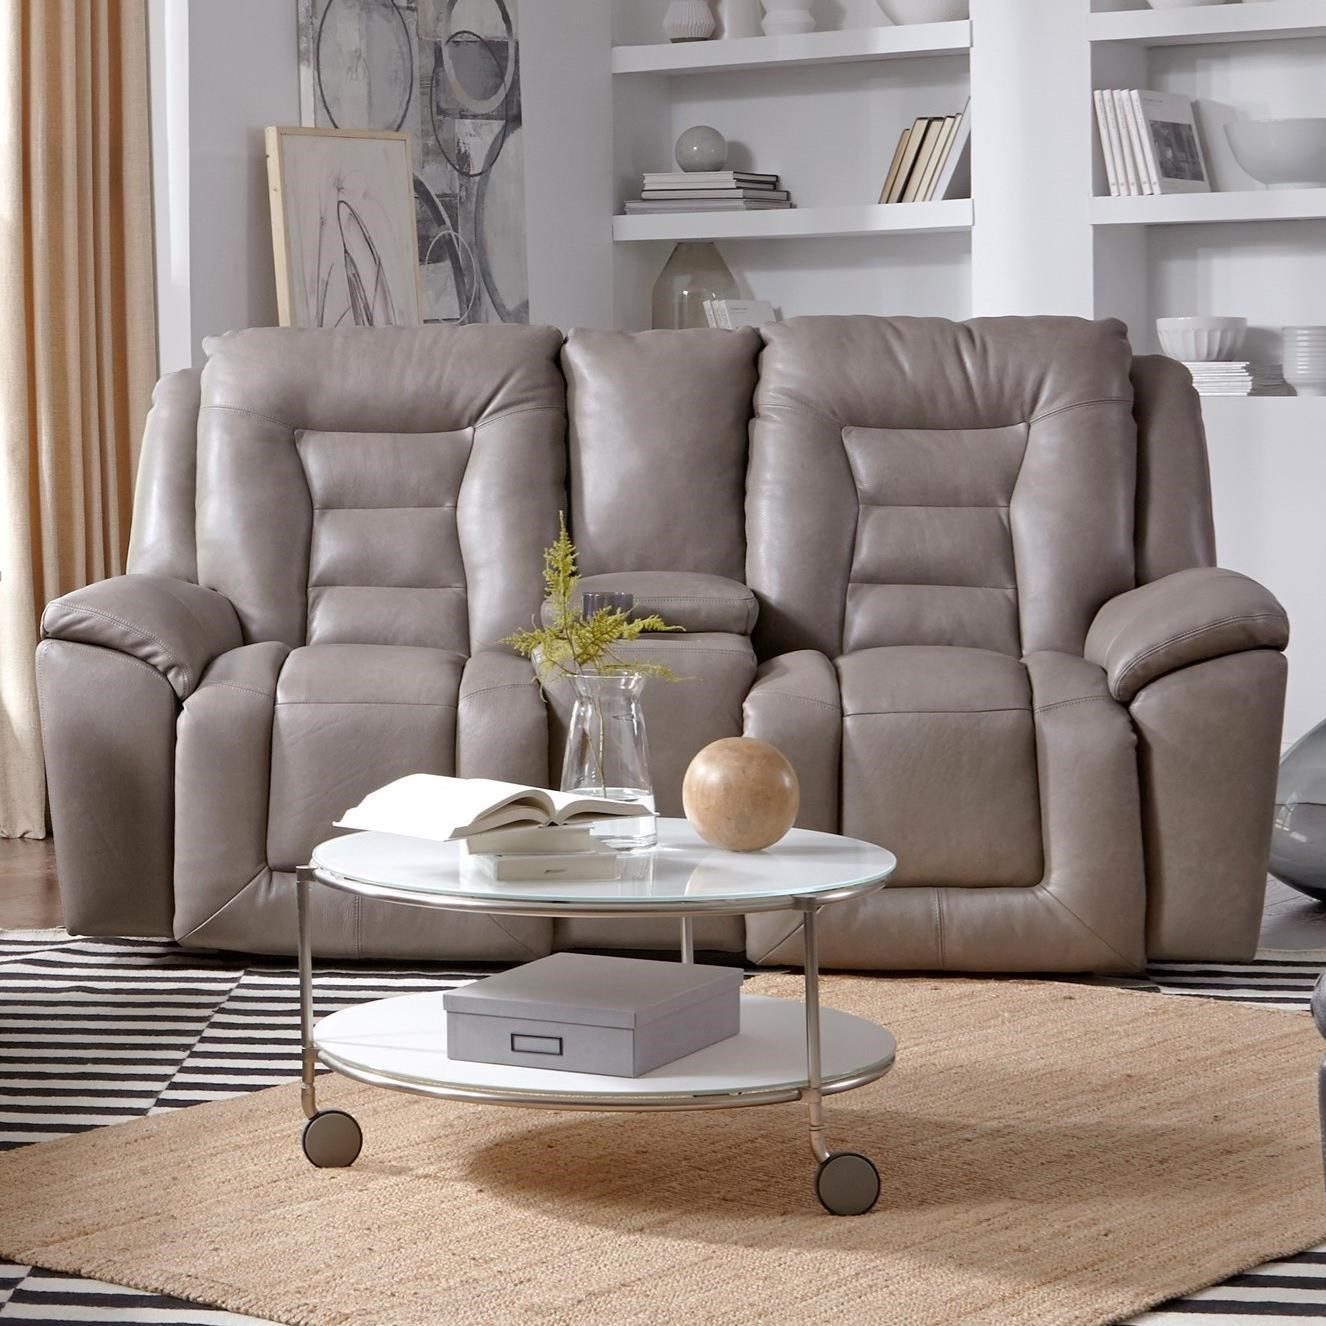 Grid Iron Double Reclining Sofa w/ Console by Southern Motion at Home Furnishings Direct